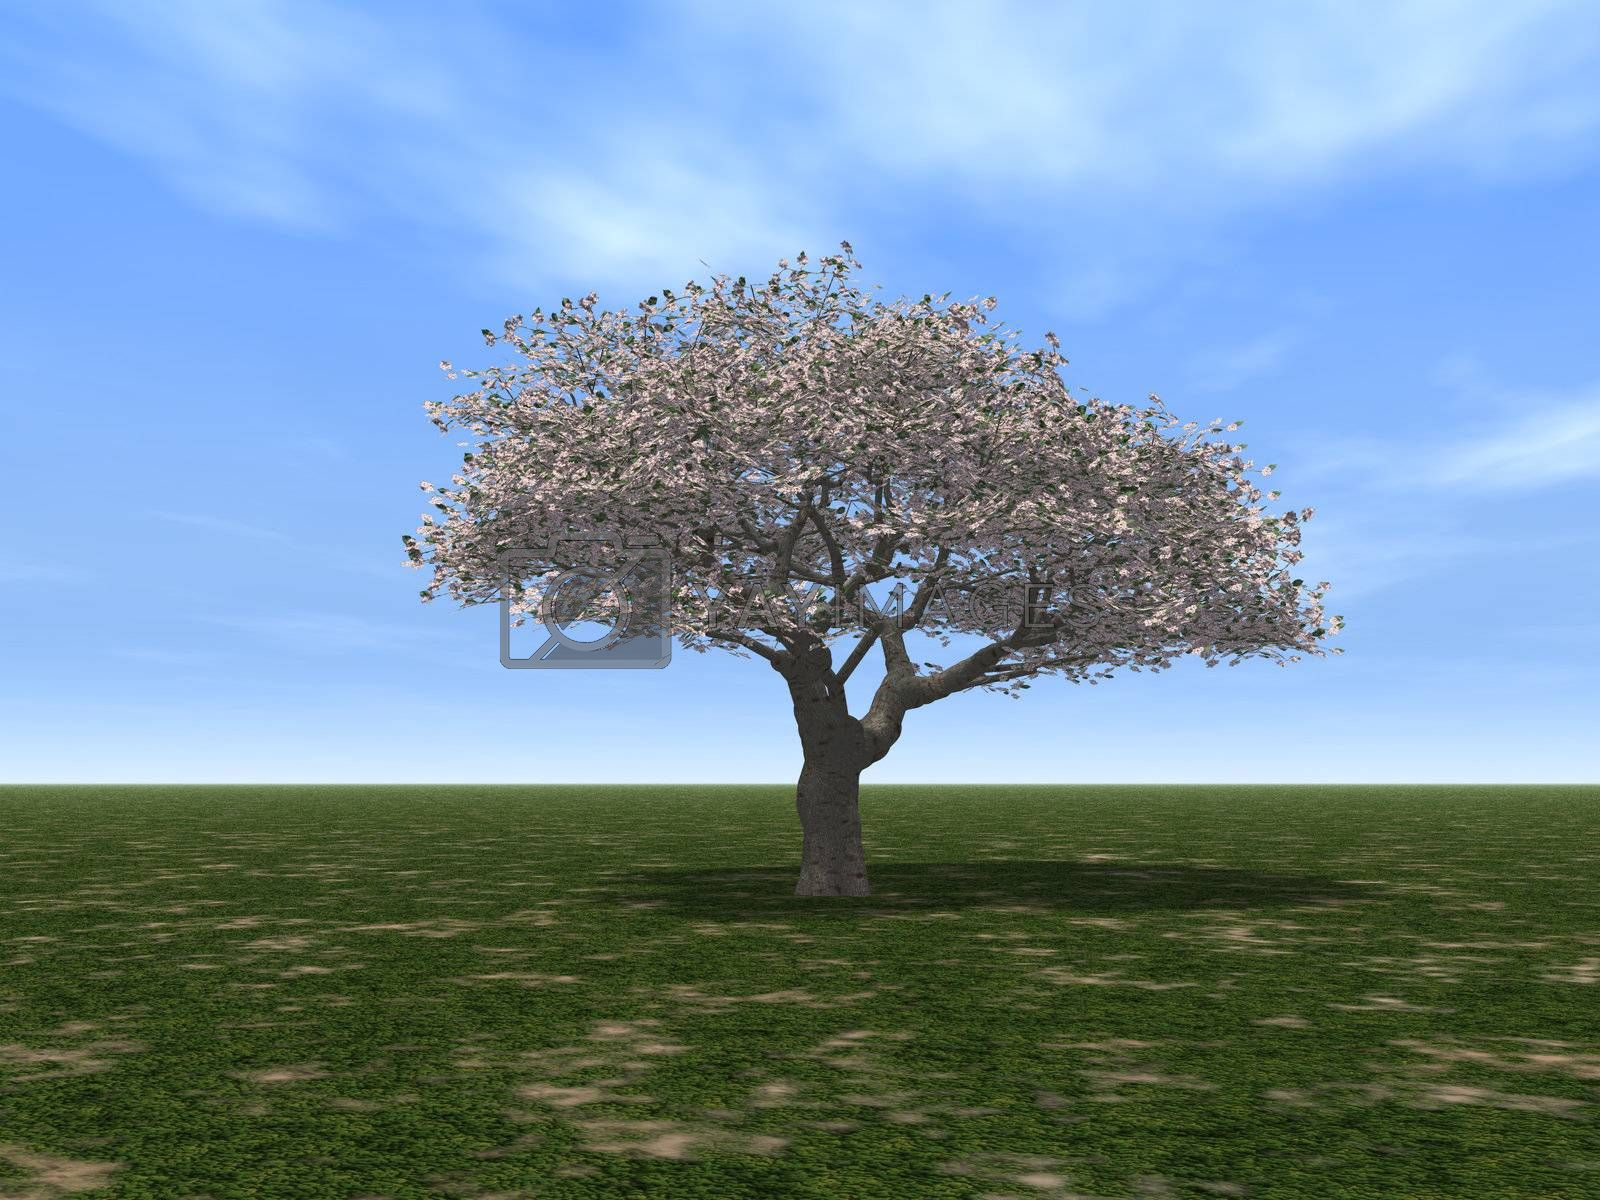 a tree on a green field and blue sky - 3d illustration